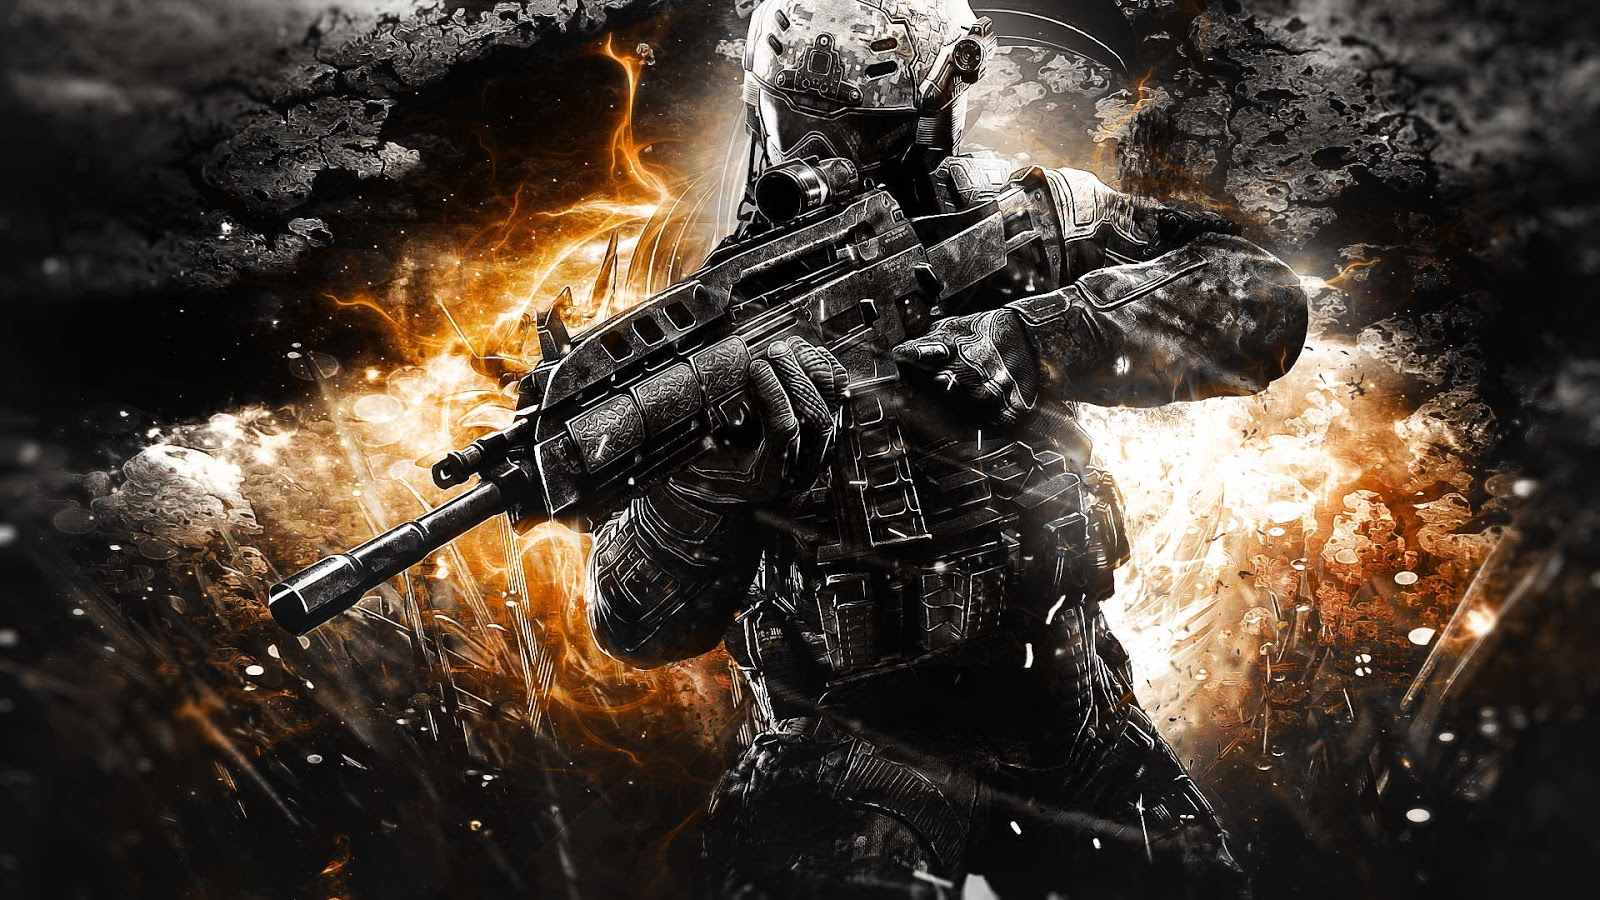 Call Of Duty 2 Zombies WallpaperCOD Black Ops Wallpapers HD 1600x900